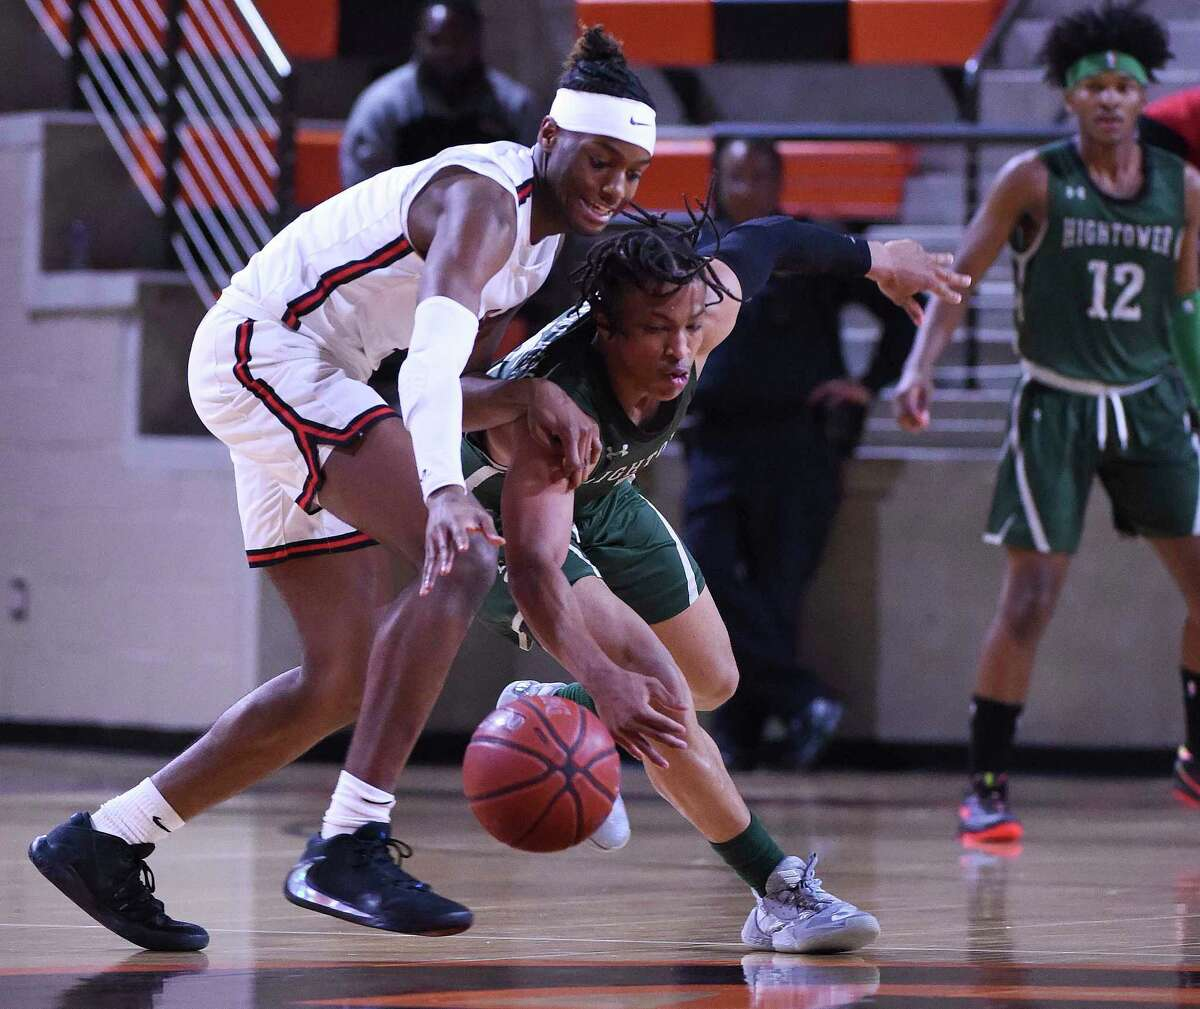 Hightower guard Chris Harris, stealing the ball against Port Arthur Memorial, is one of the many players not named Bryce Griggs that contributes to team's success.